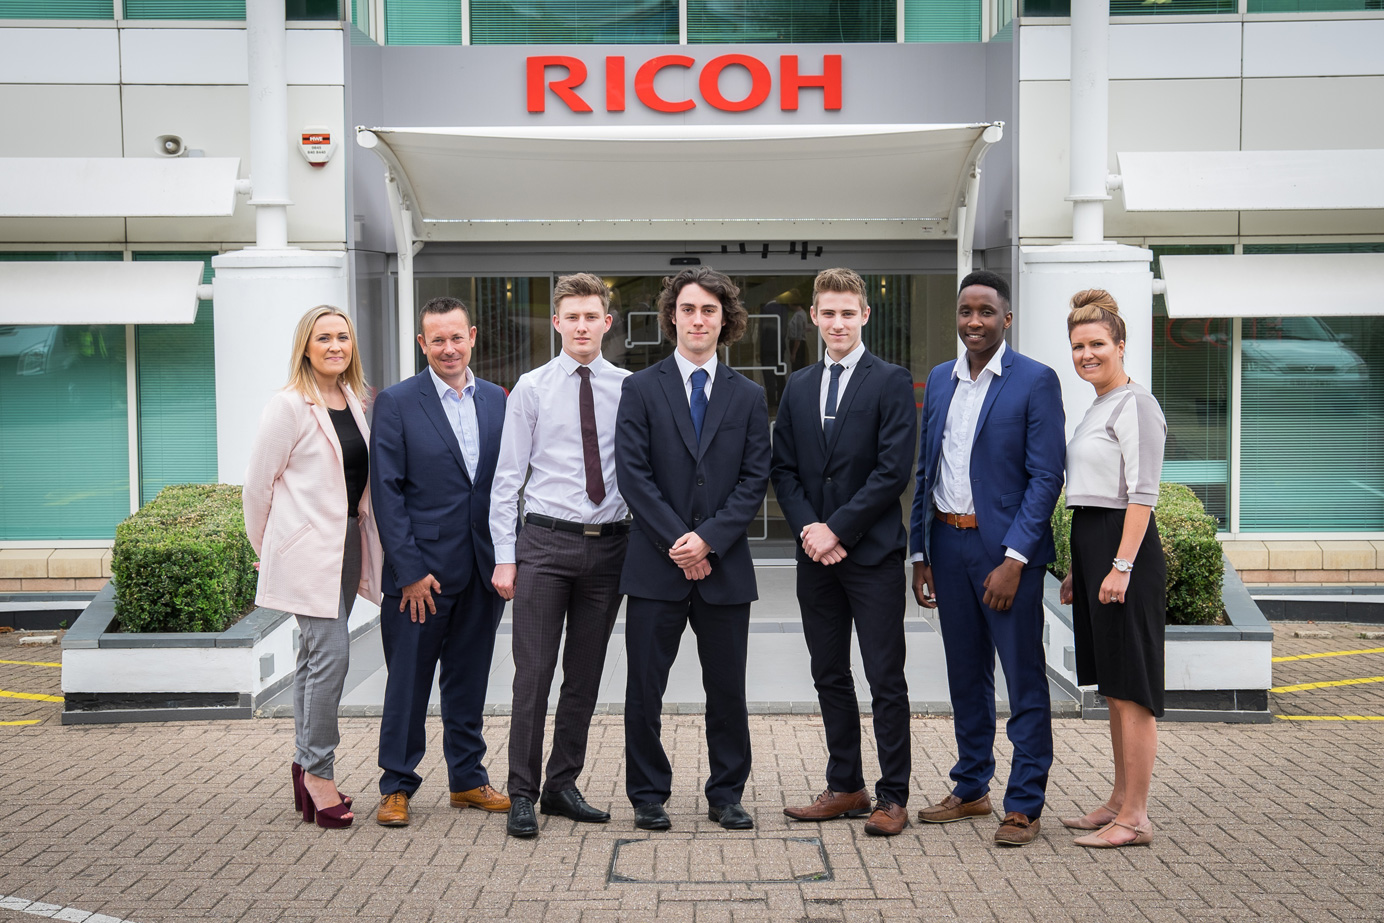 apprenticeships in northampton RICOH